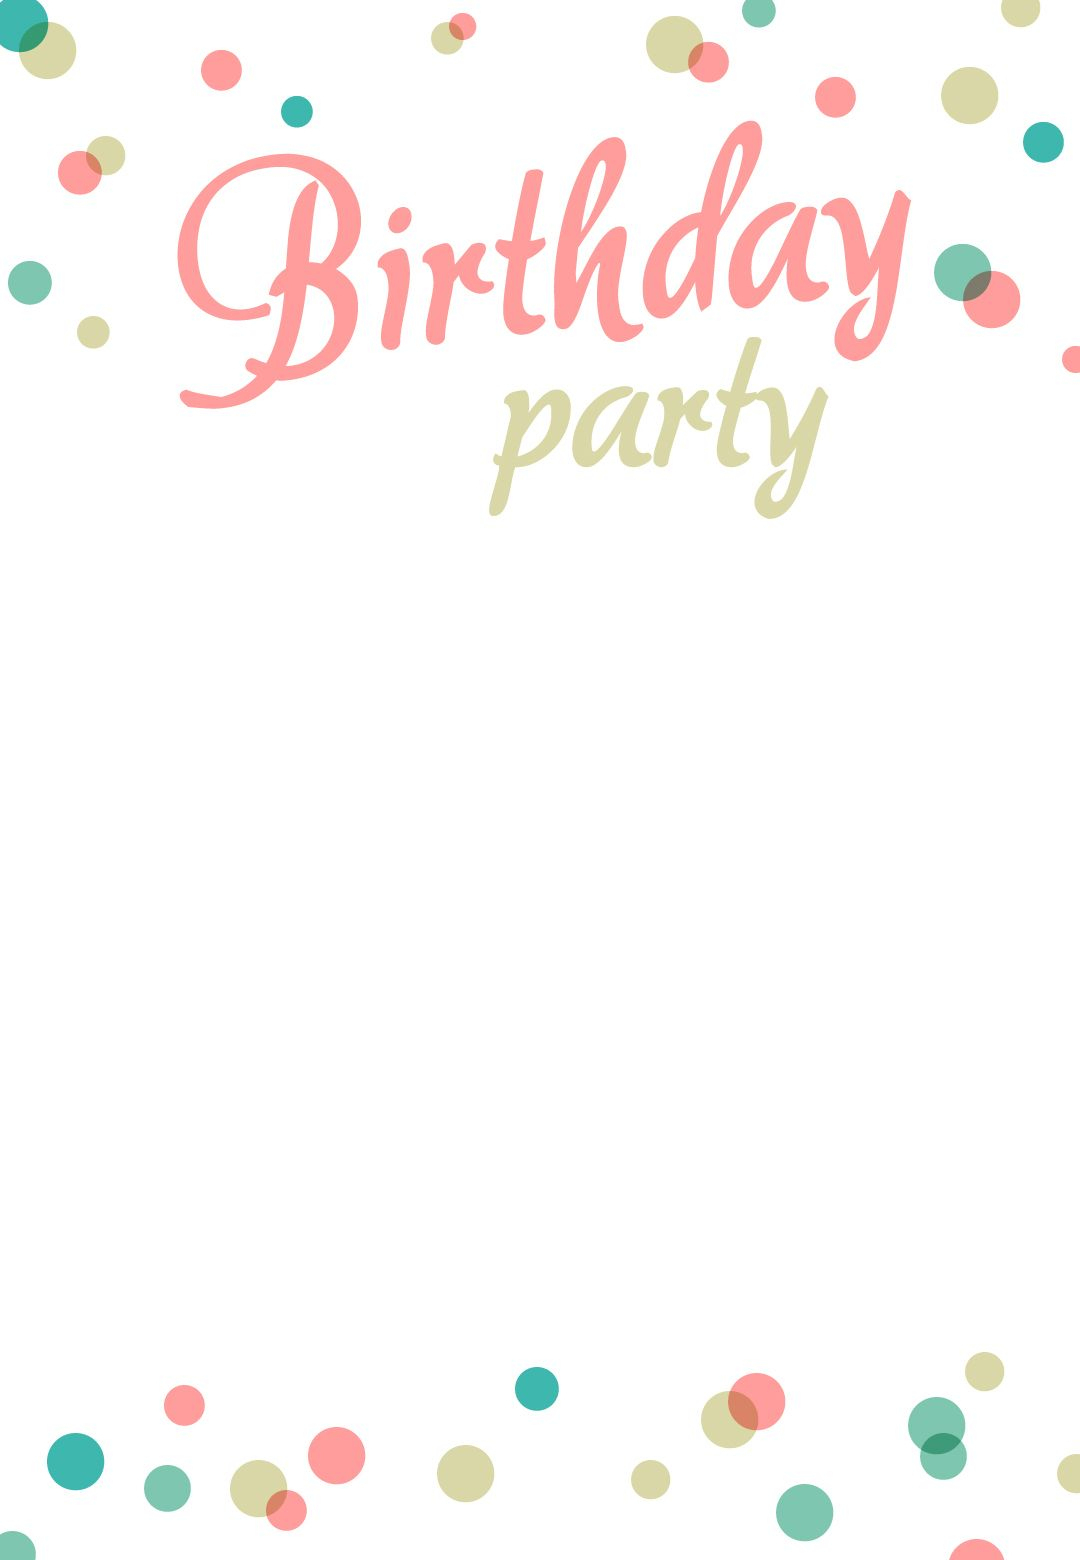 Birthday Party #invitation Free Printable | Party. | Pinterest - Free Printable Birthday Invitations Pinterest